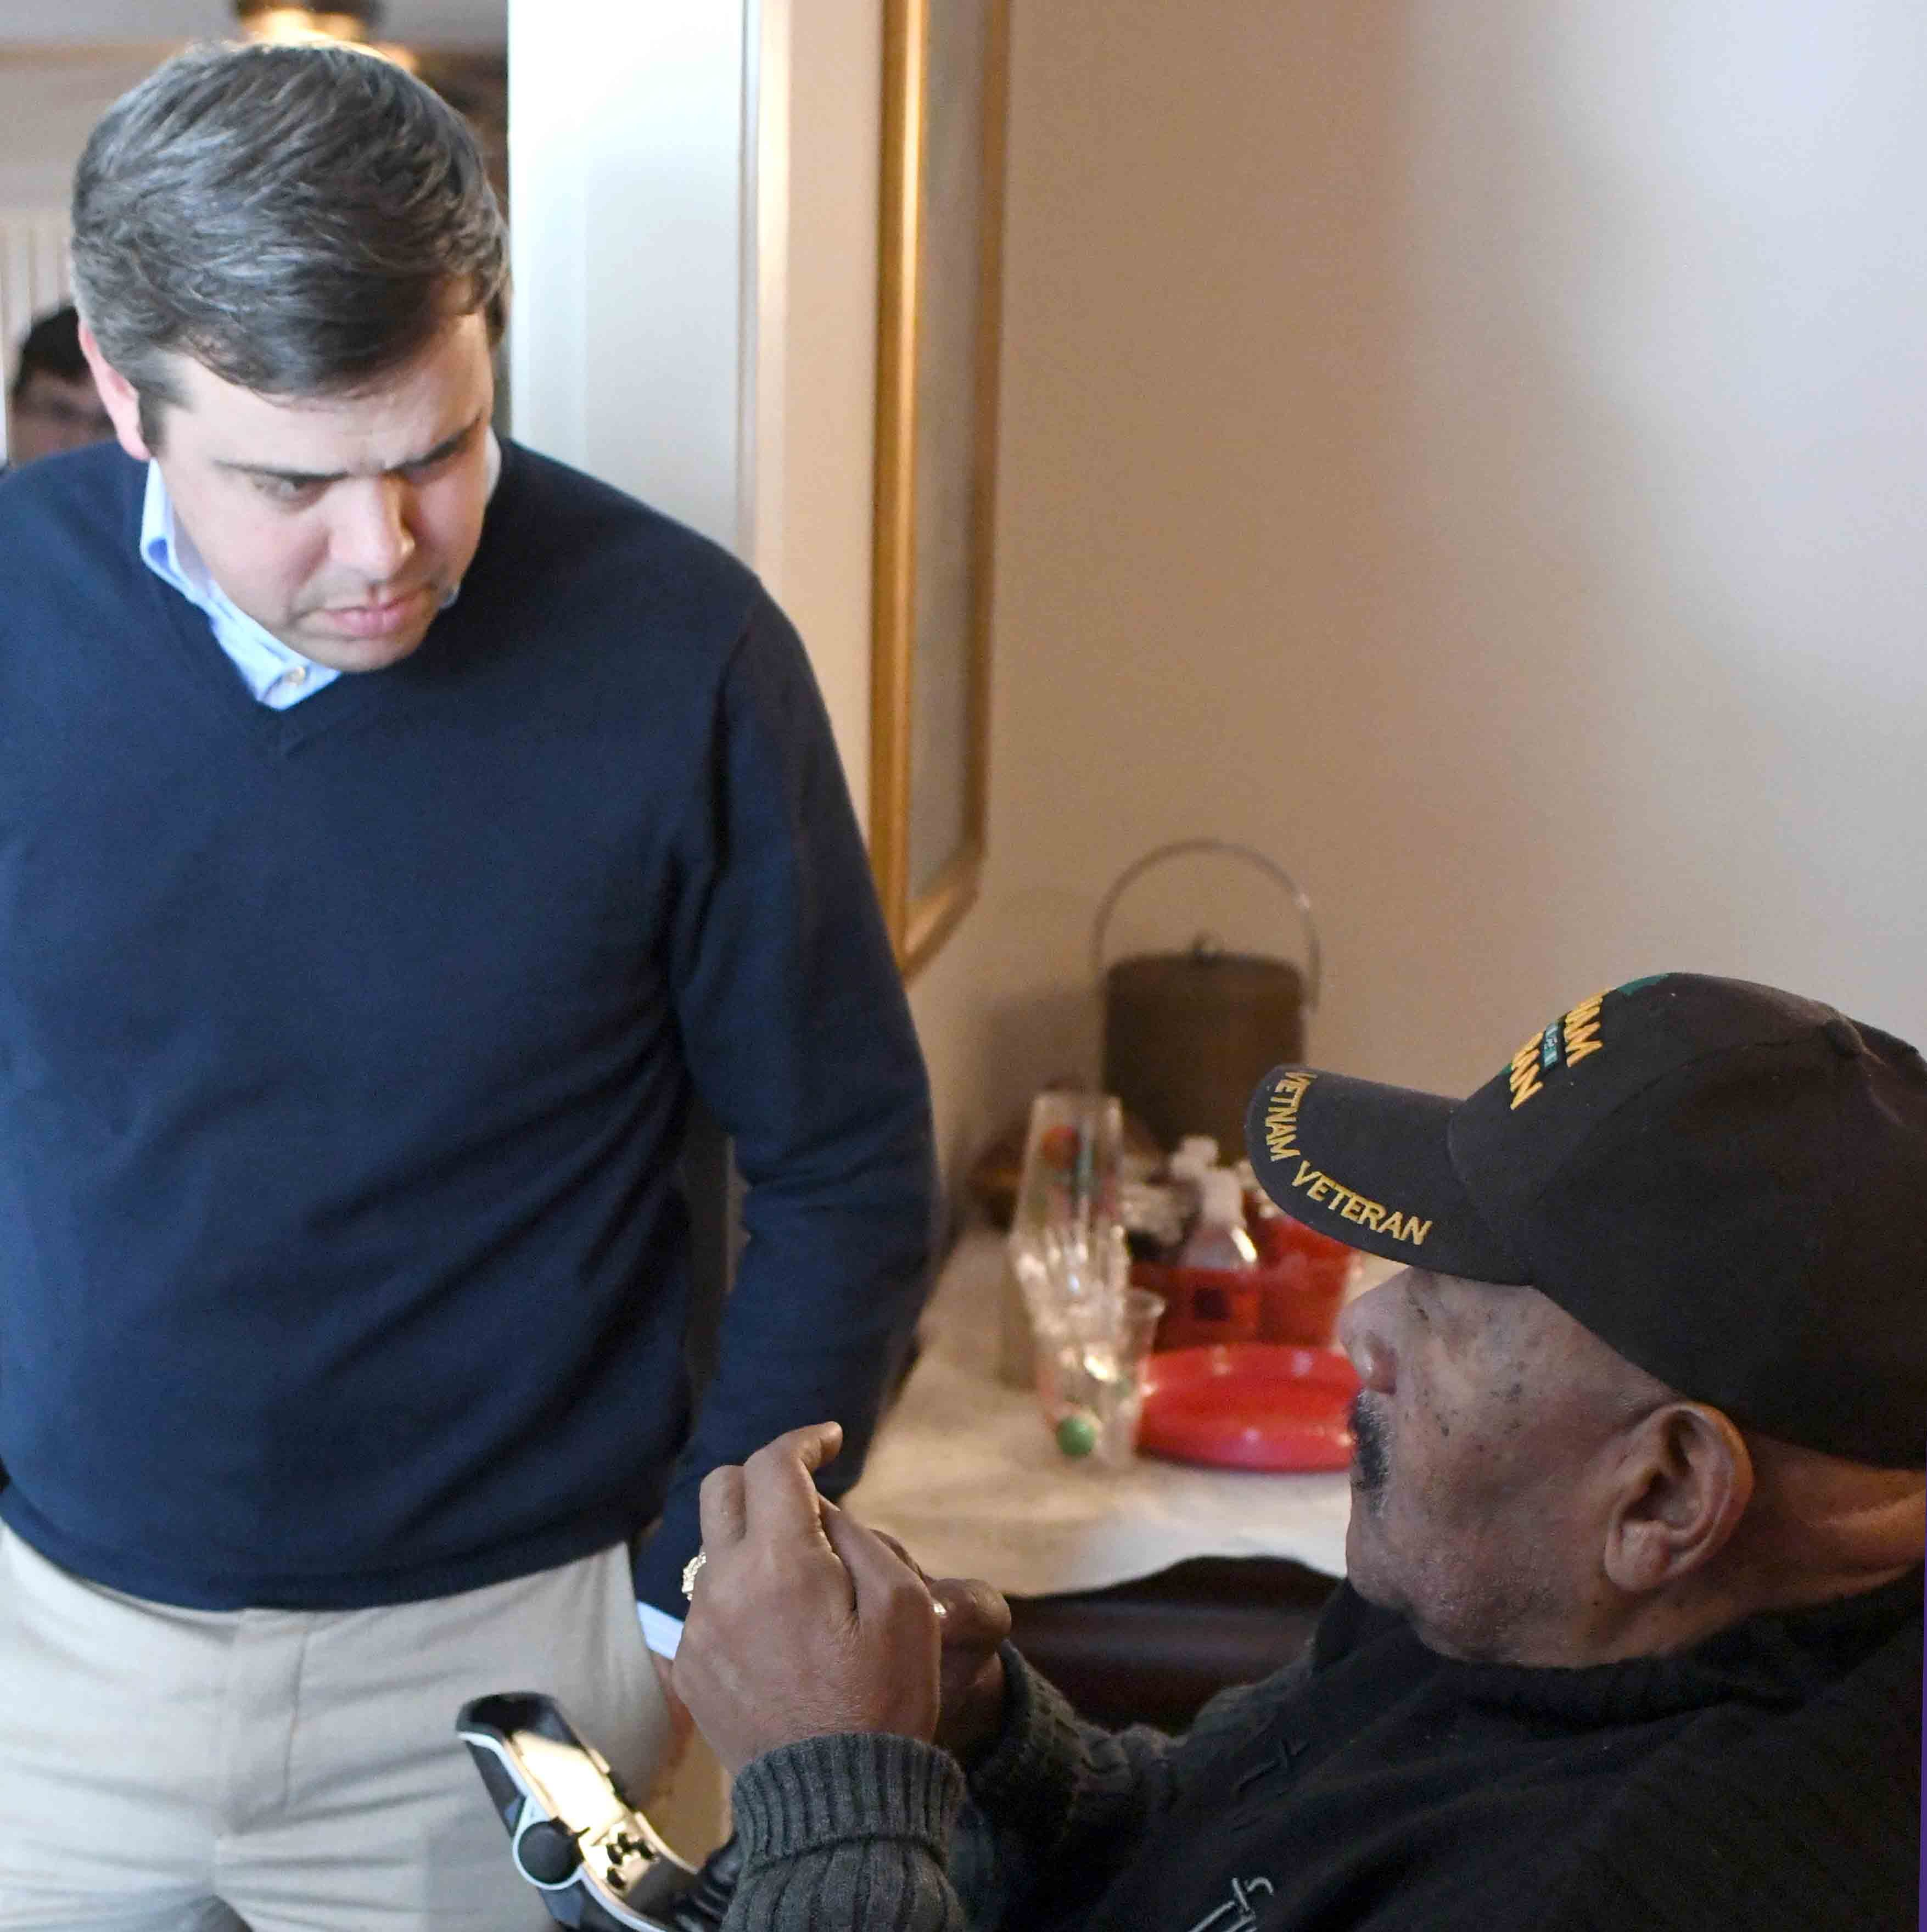 Why Hattiesburg is a 'shining example' for helping veterans, group says